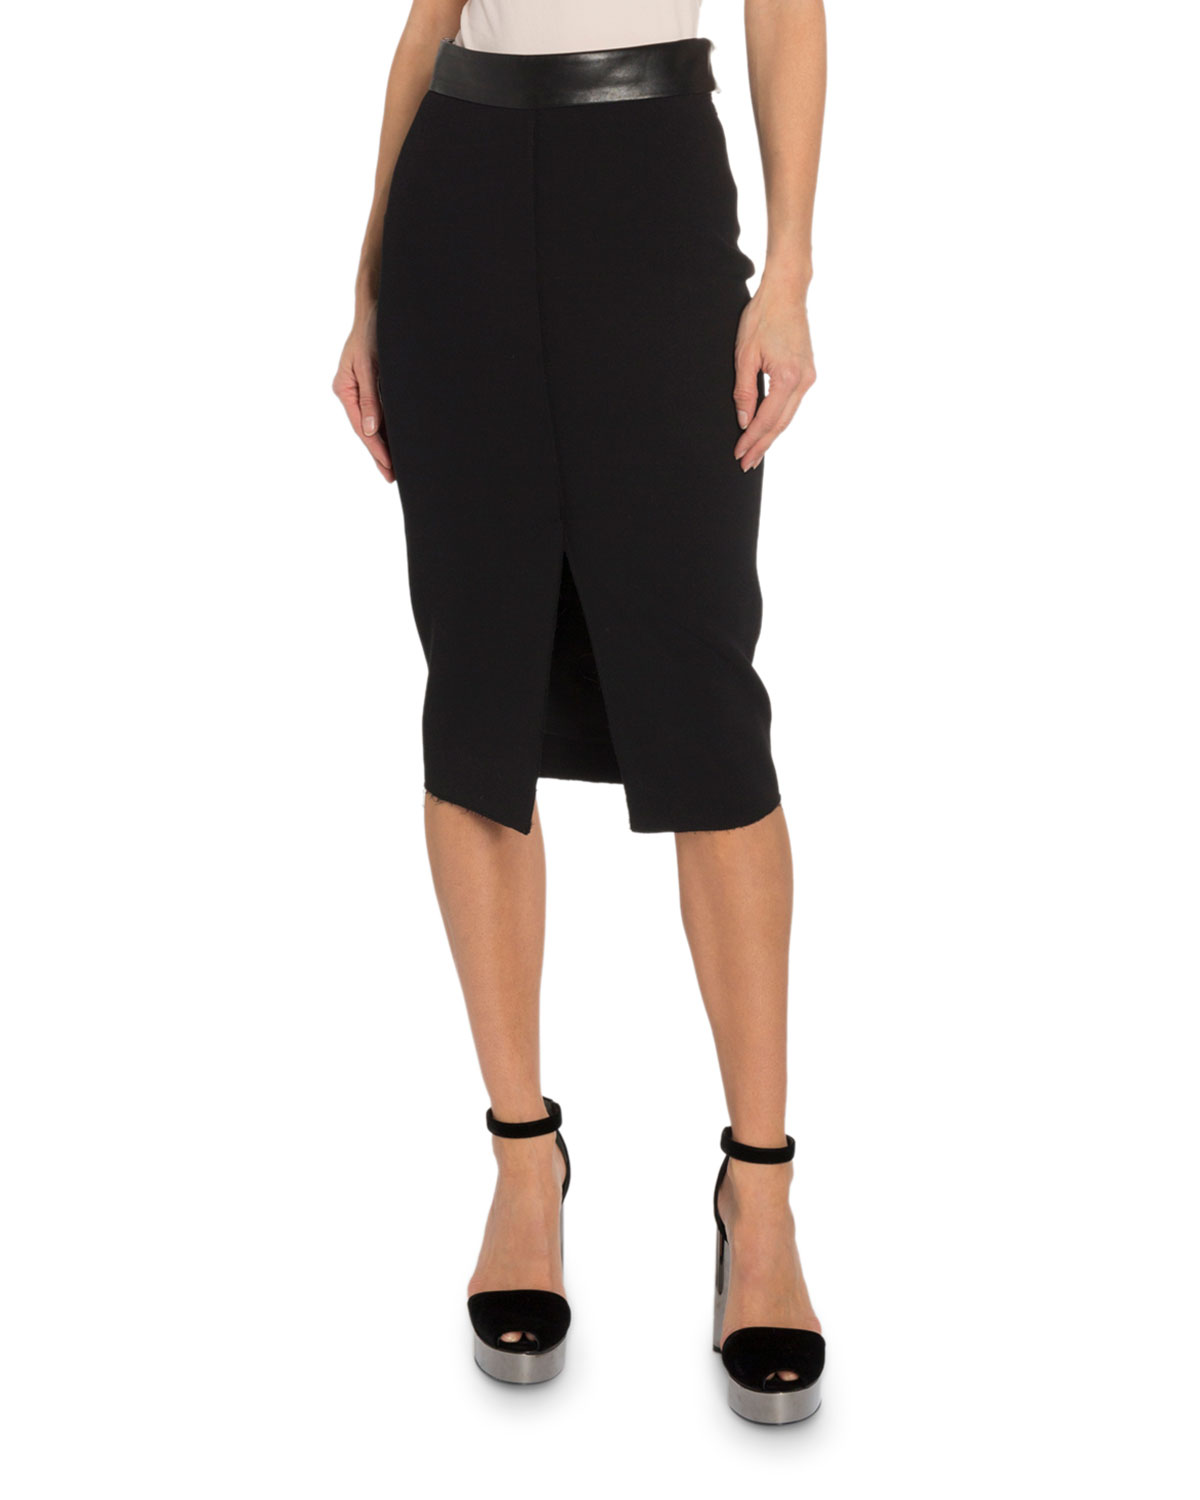 TOM FORD Leather-Trim Pencil Skirt